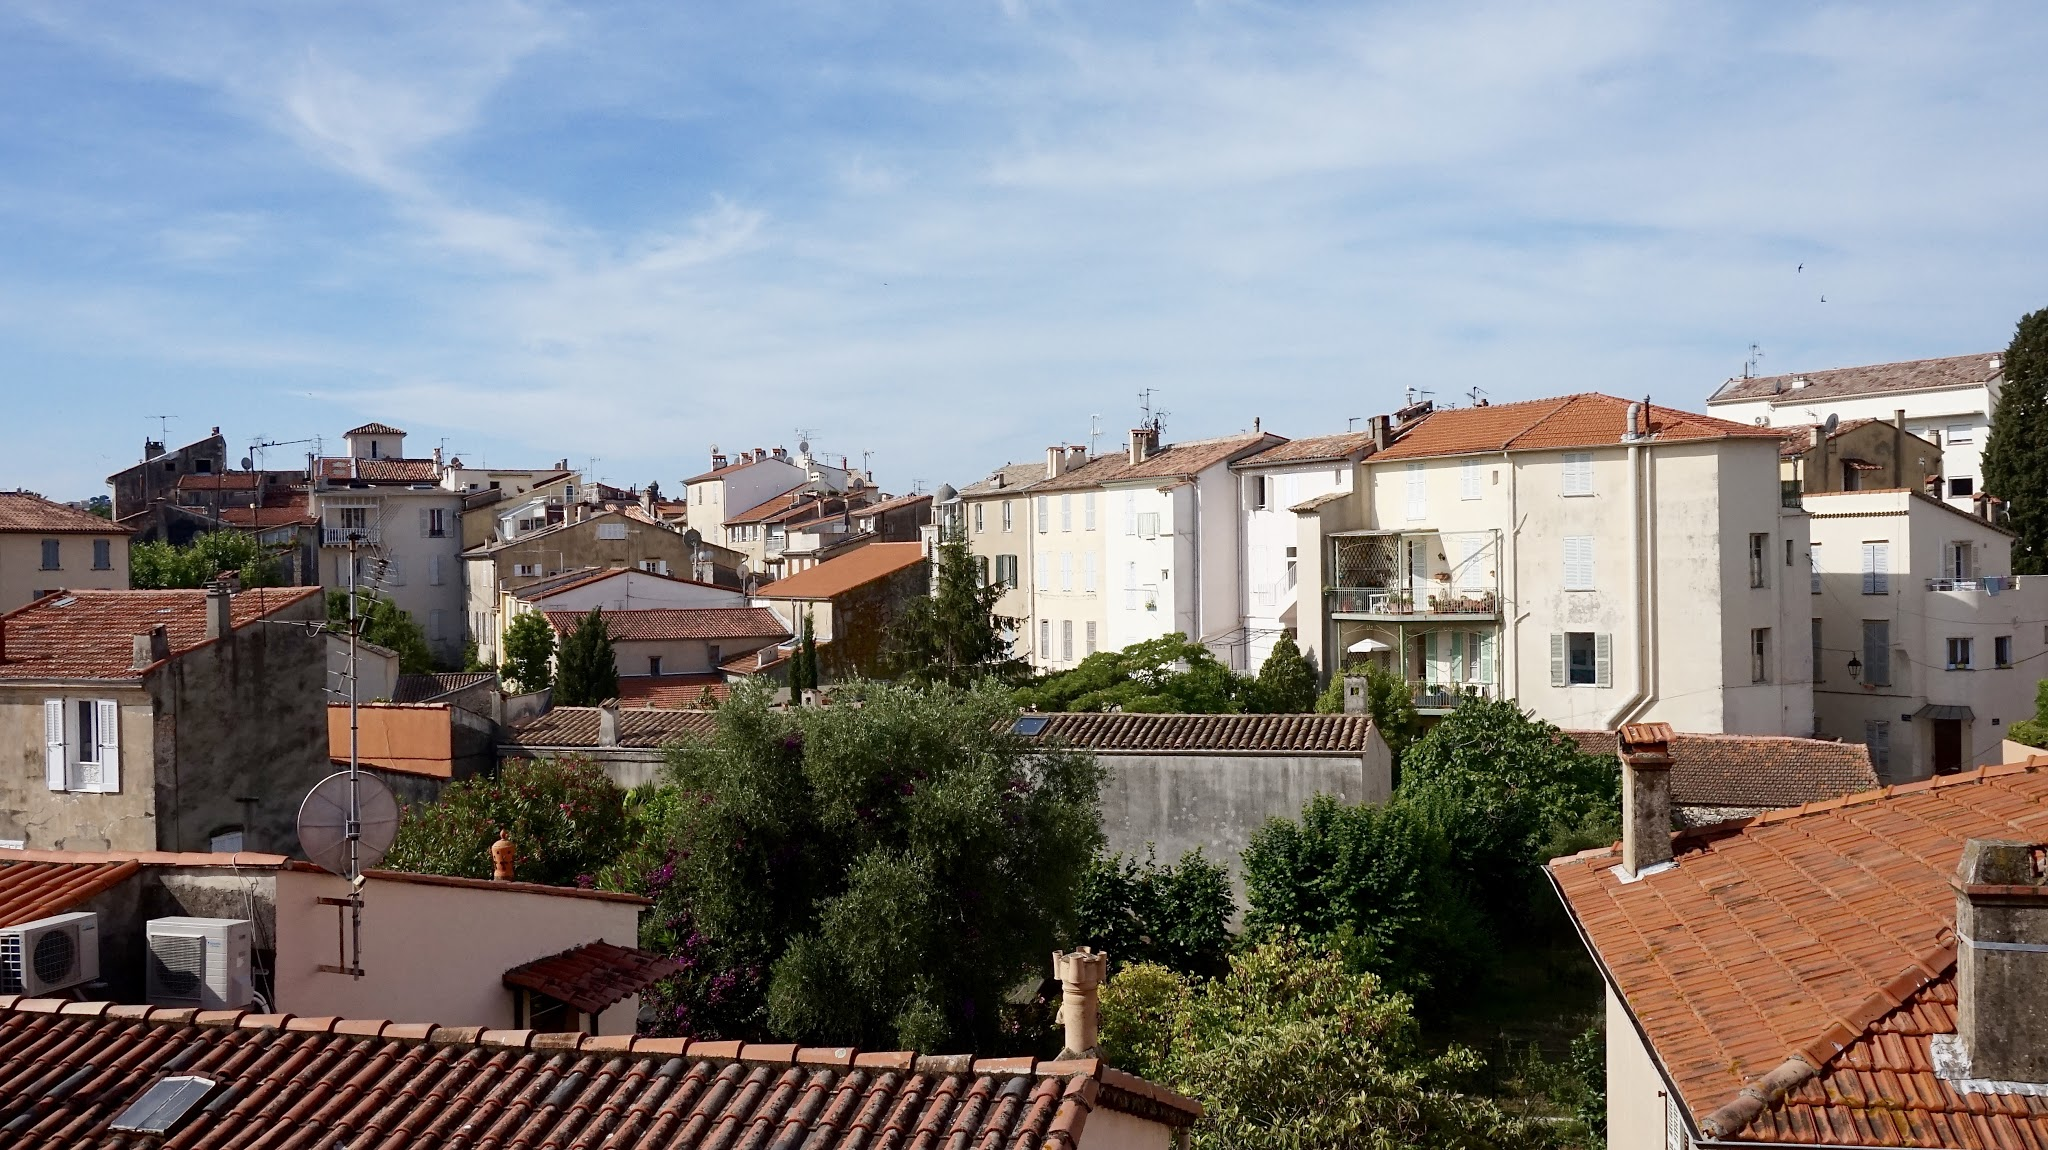 a view over rooftops, blue sky